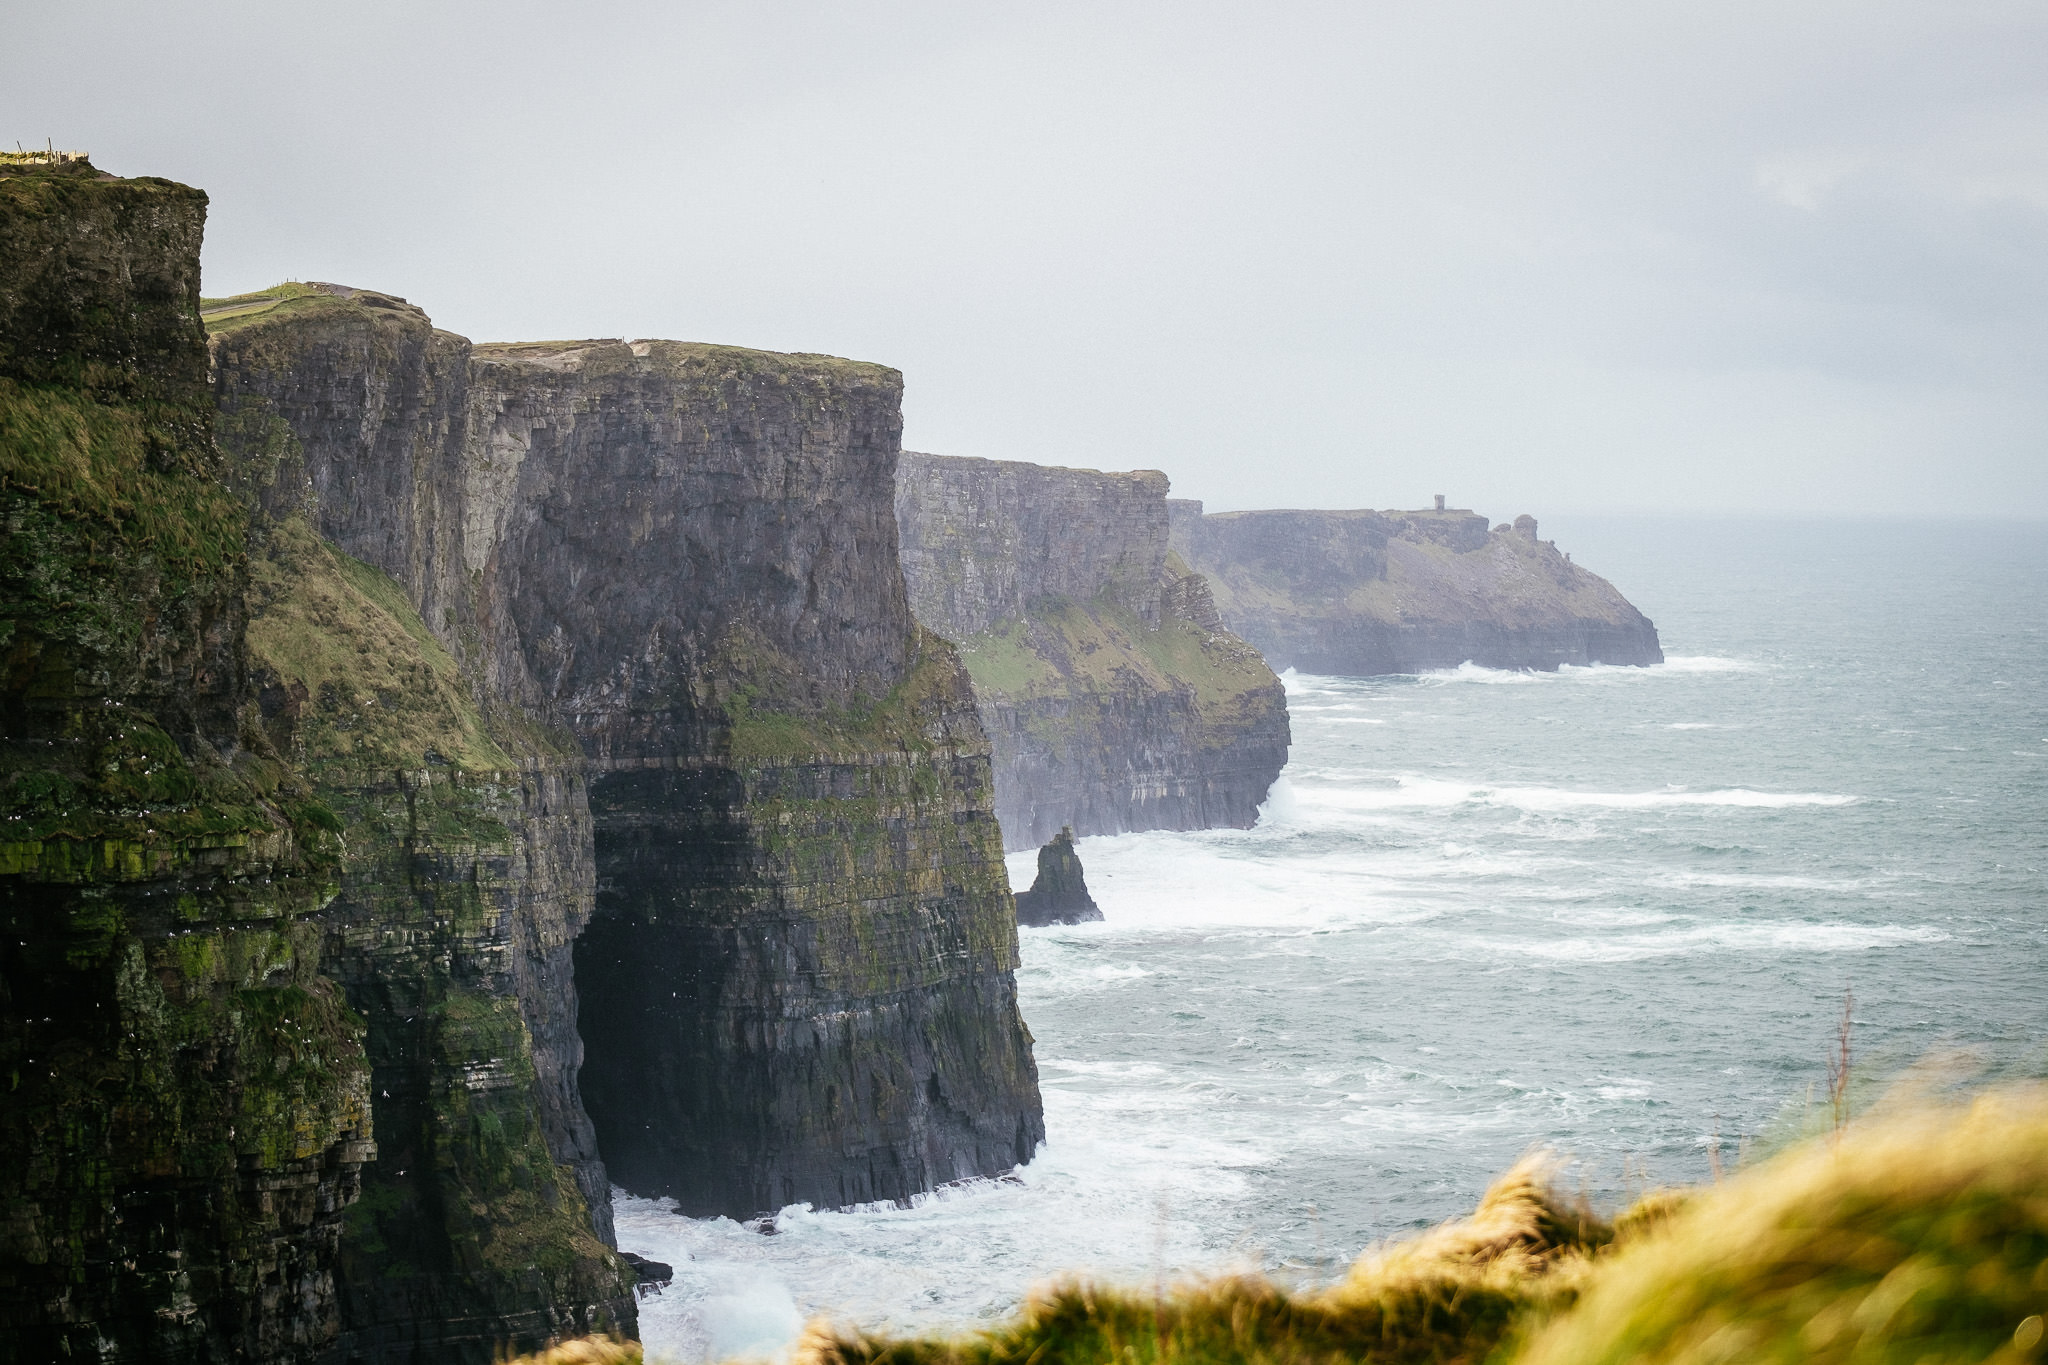 waves at the Cliffs of Moher Ireland